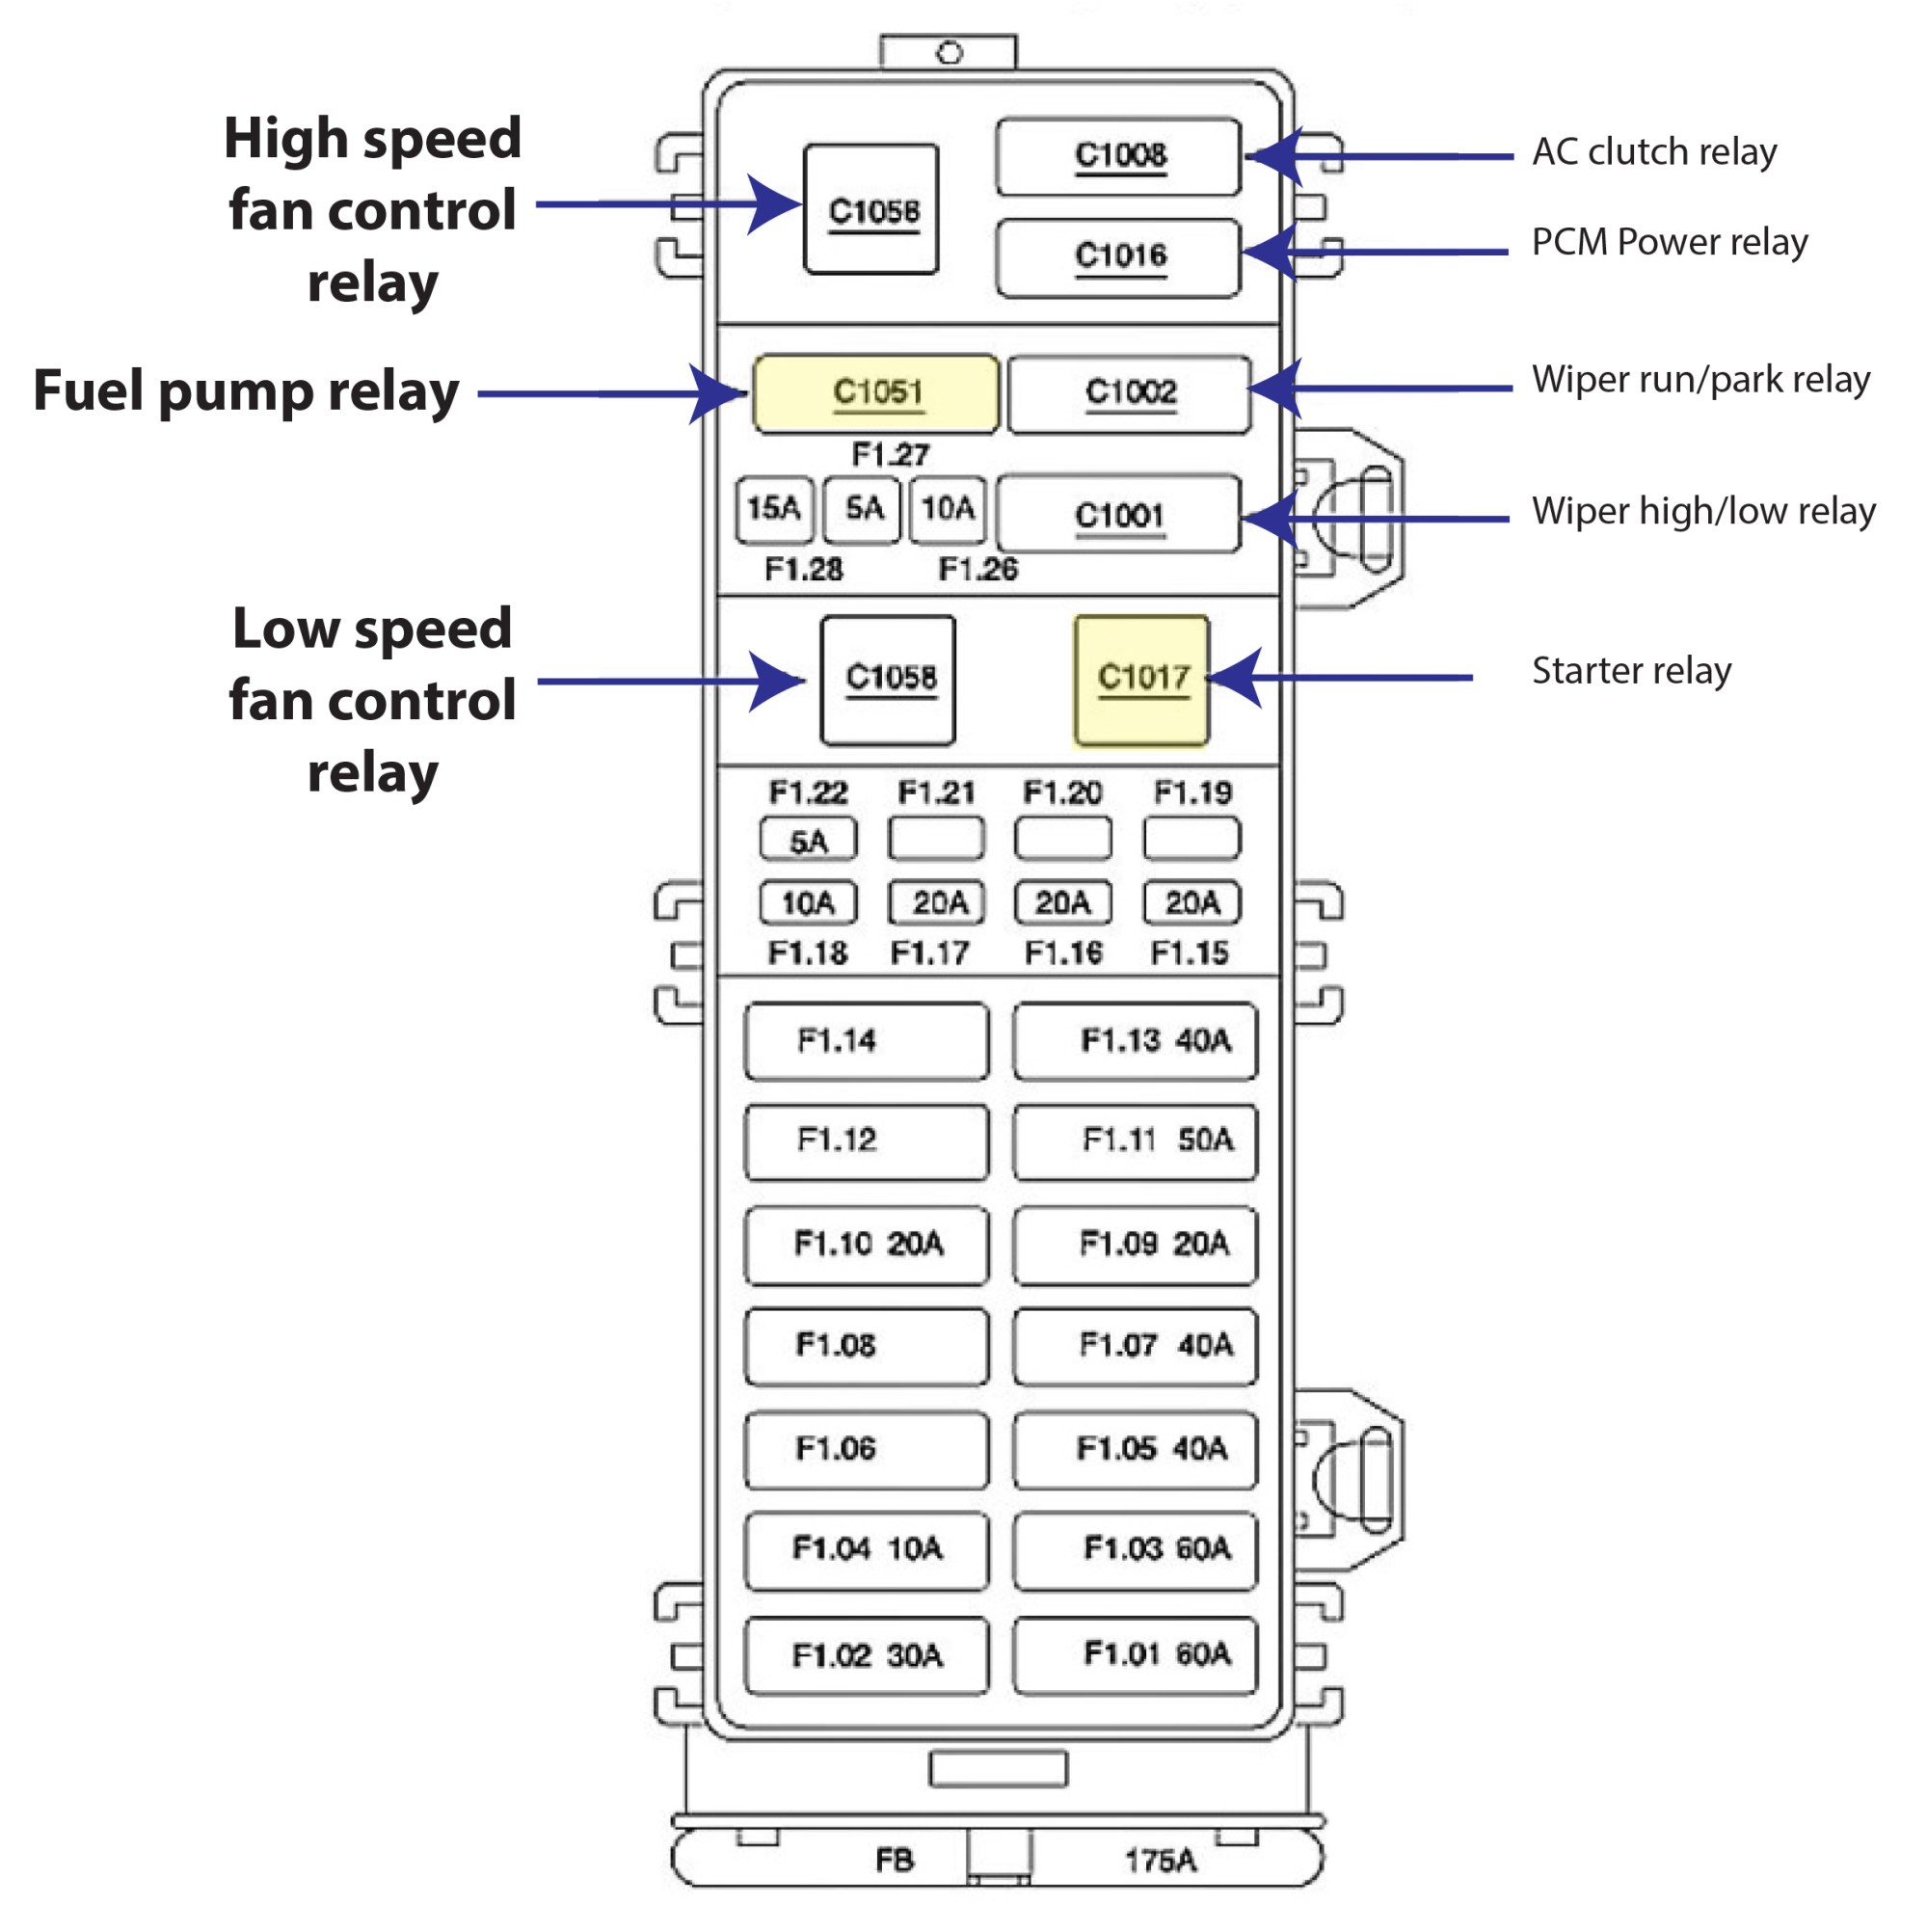 hight resolution of ford fuse box repair wiring diagram nameford fuse box repair wiring diagram perfomance ford focus fuse